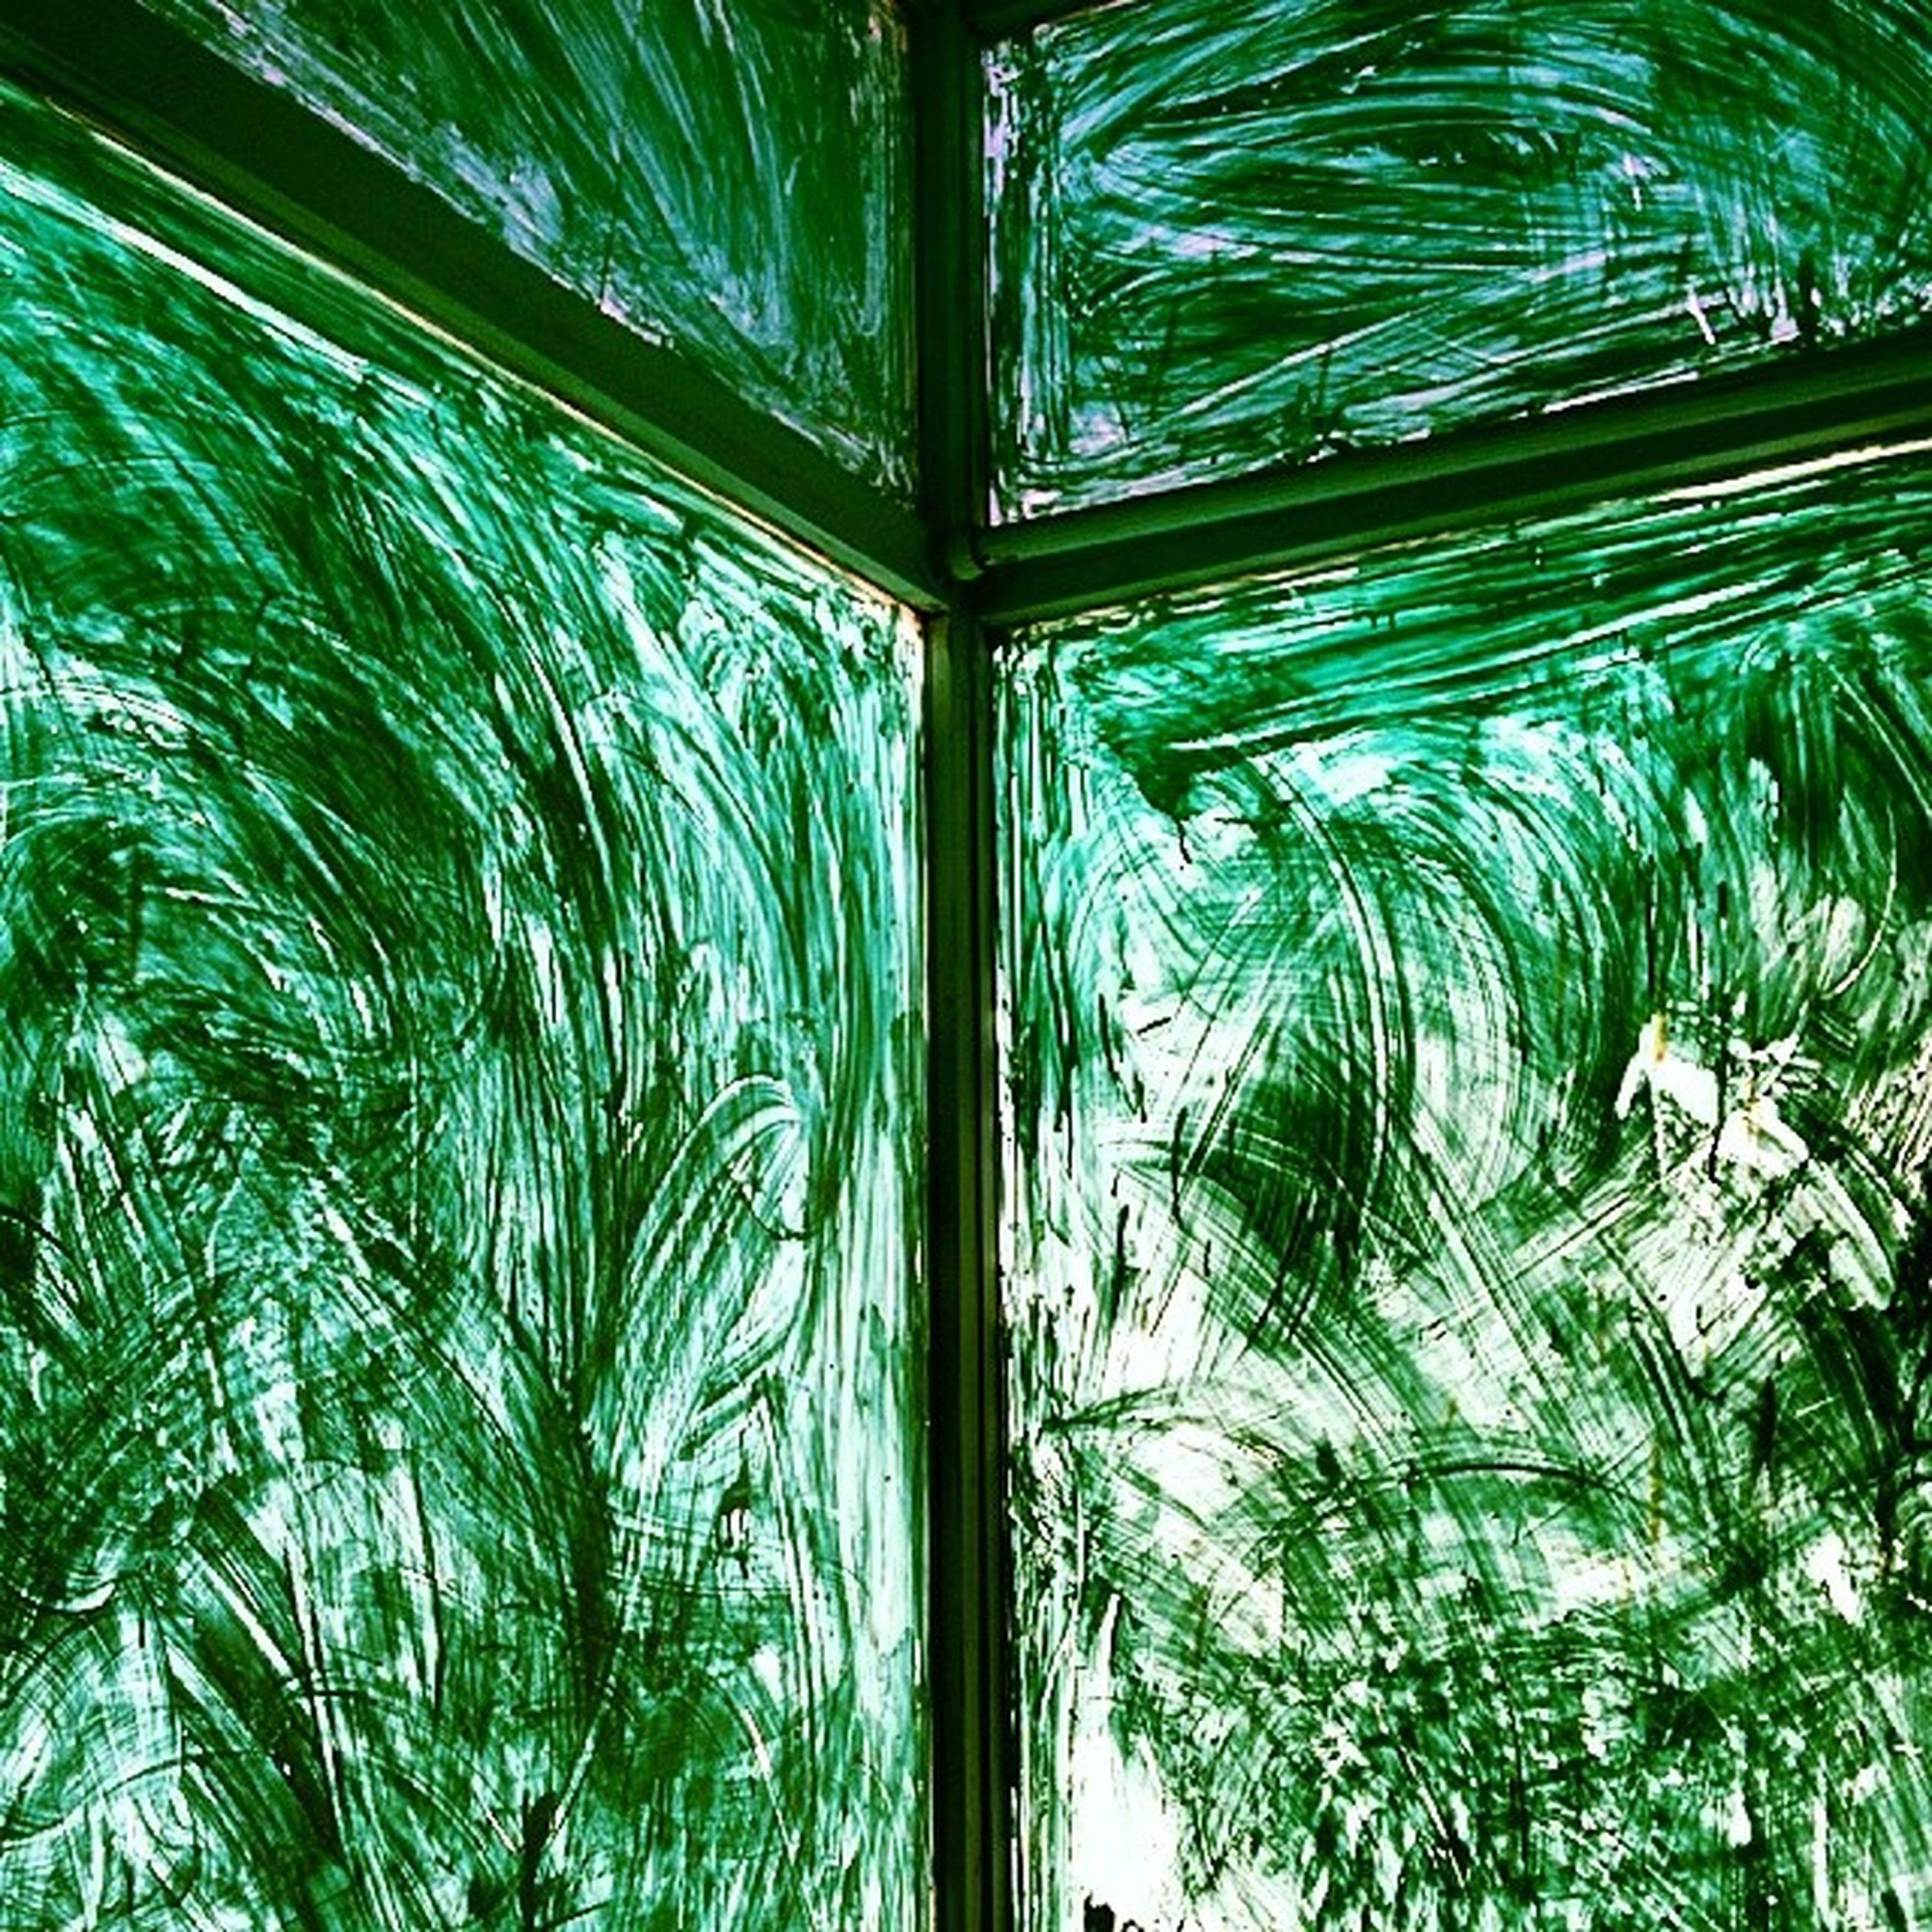 tree, full frame, backgrounds, green color, growth, palm tree, low angle view, nature, day, glass - material, leaf, pattern, reflection, no people, transparent, green, outdoors, close-up, plant, tranquility